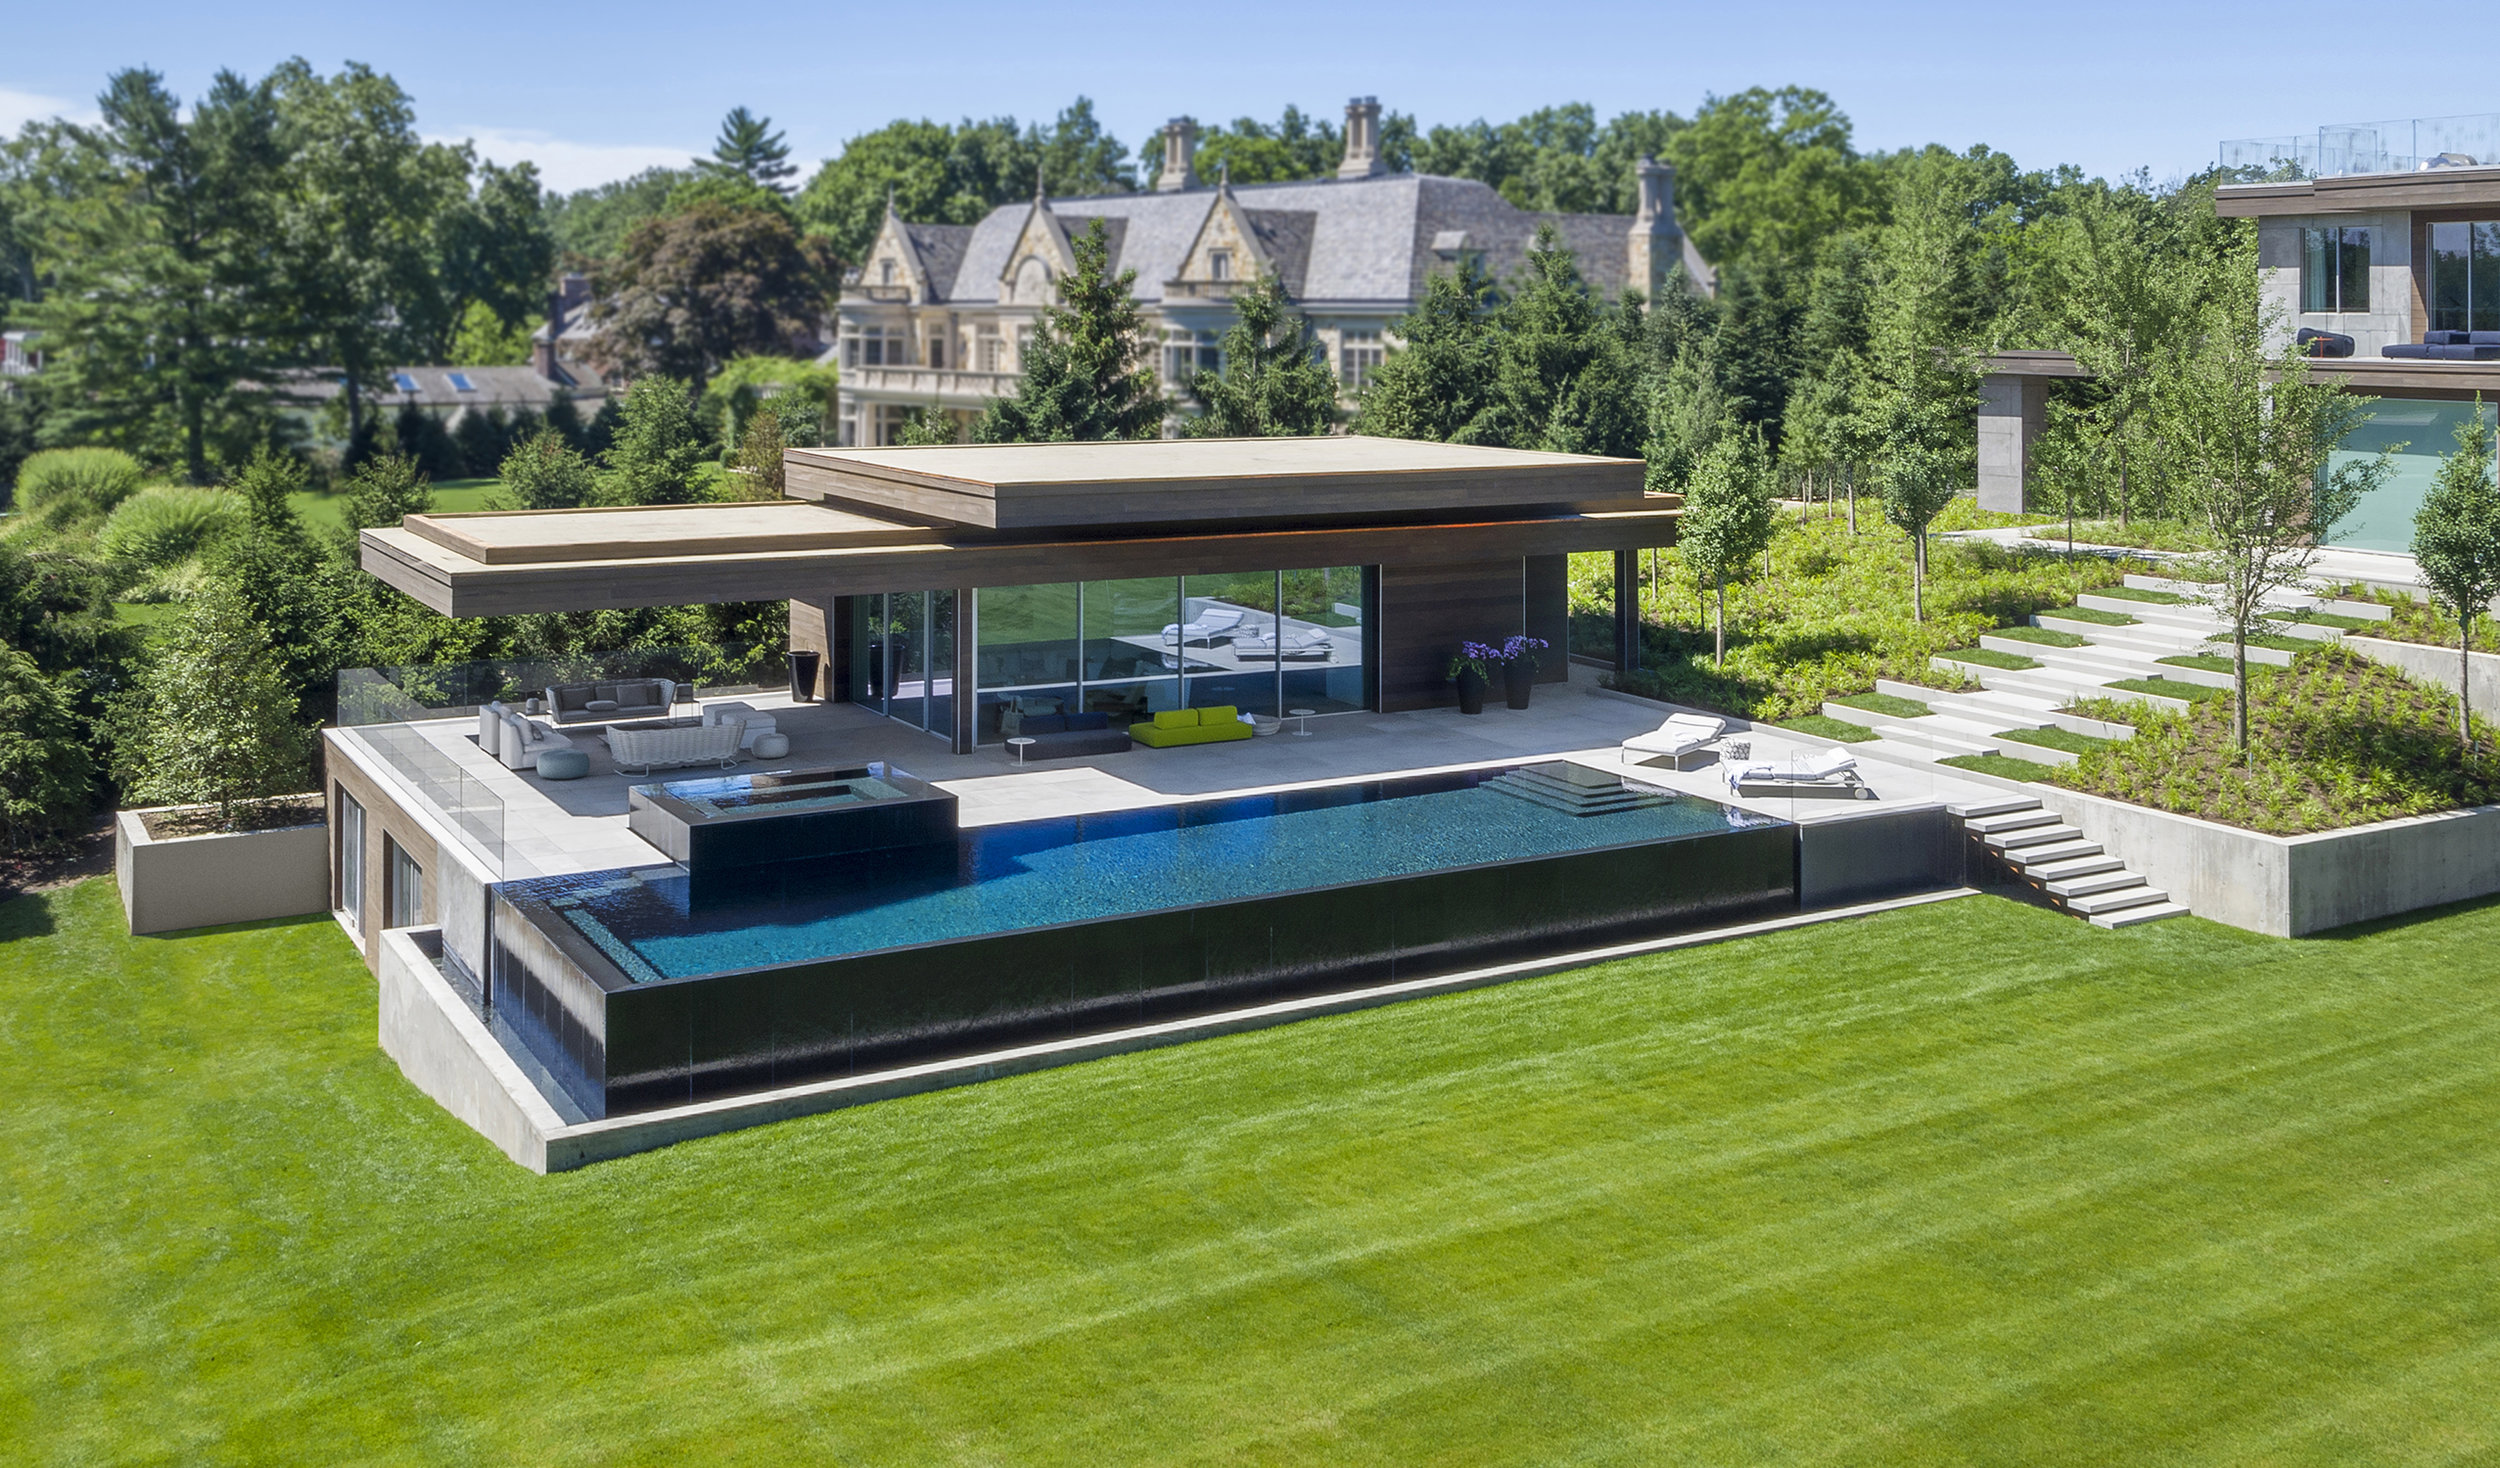 Big House pool house aerial.jpg